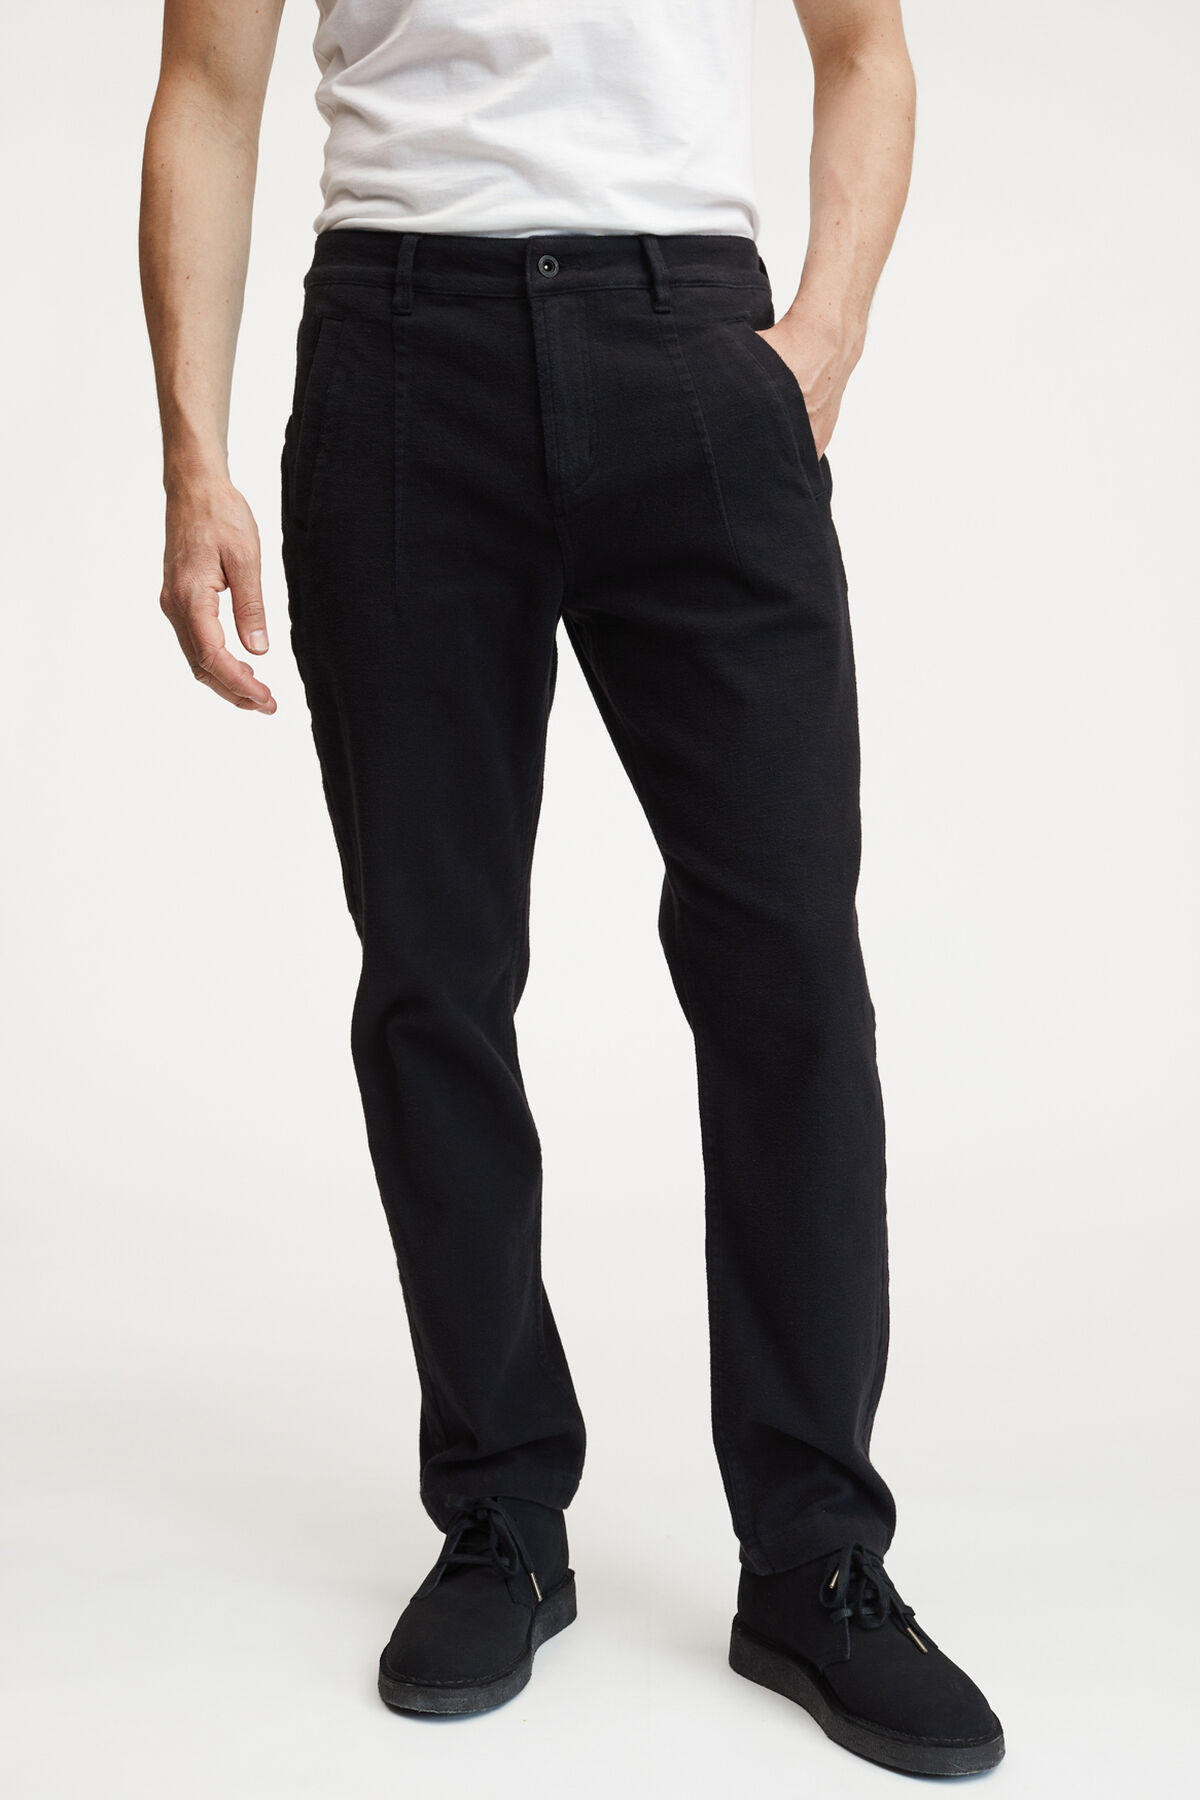 EDGE TAILOR PANT BLACK BRUSHED COTTON - Tailored, Straight Fit